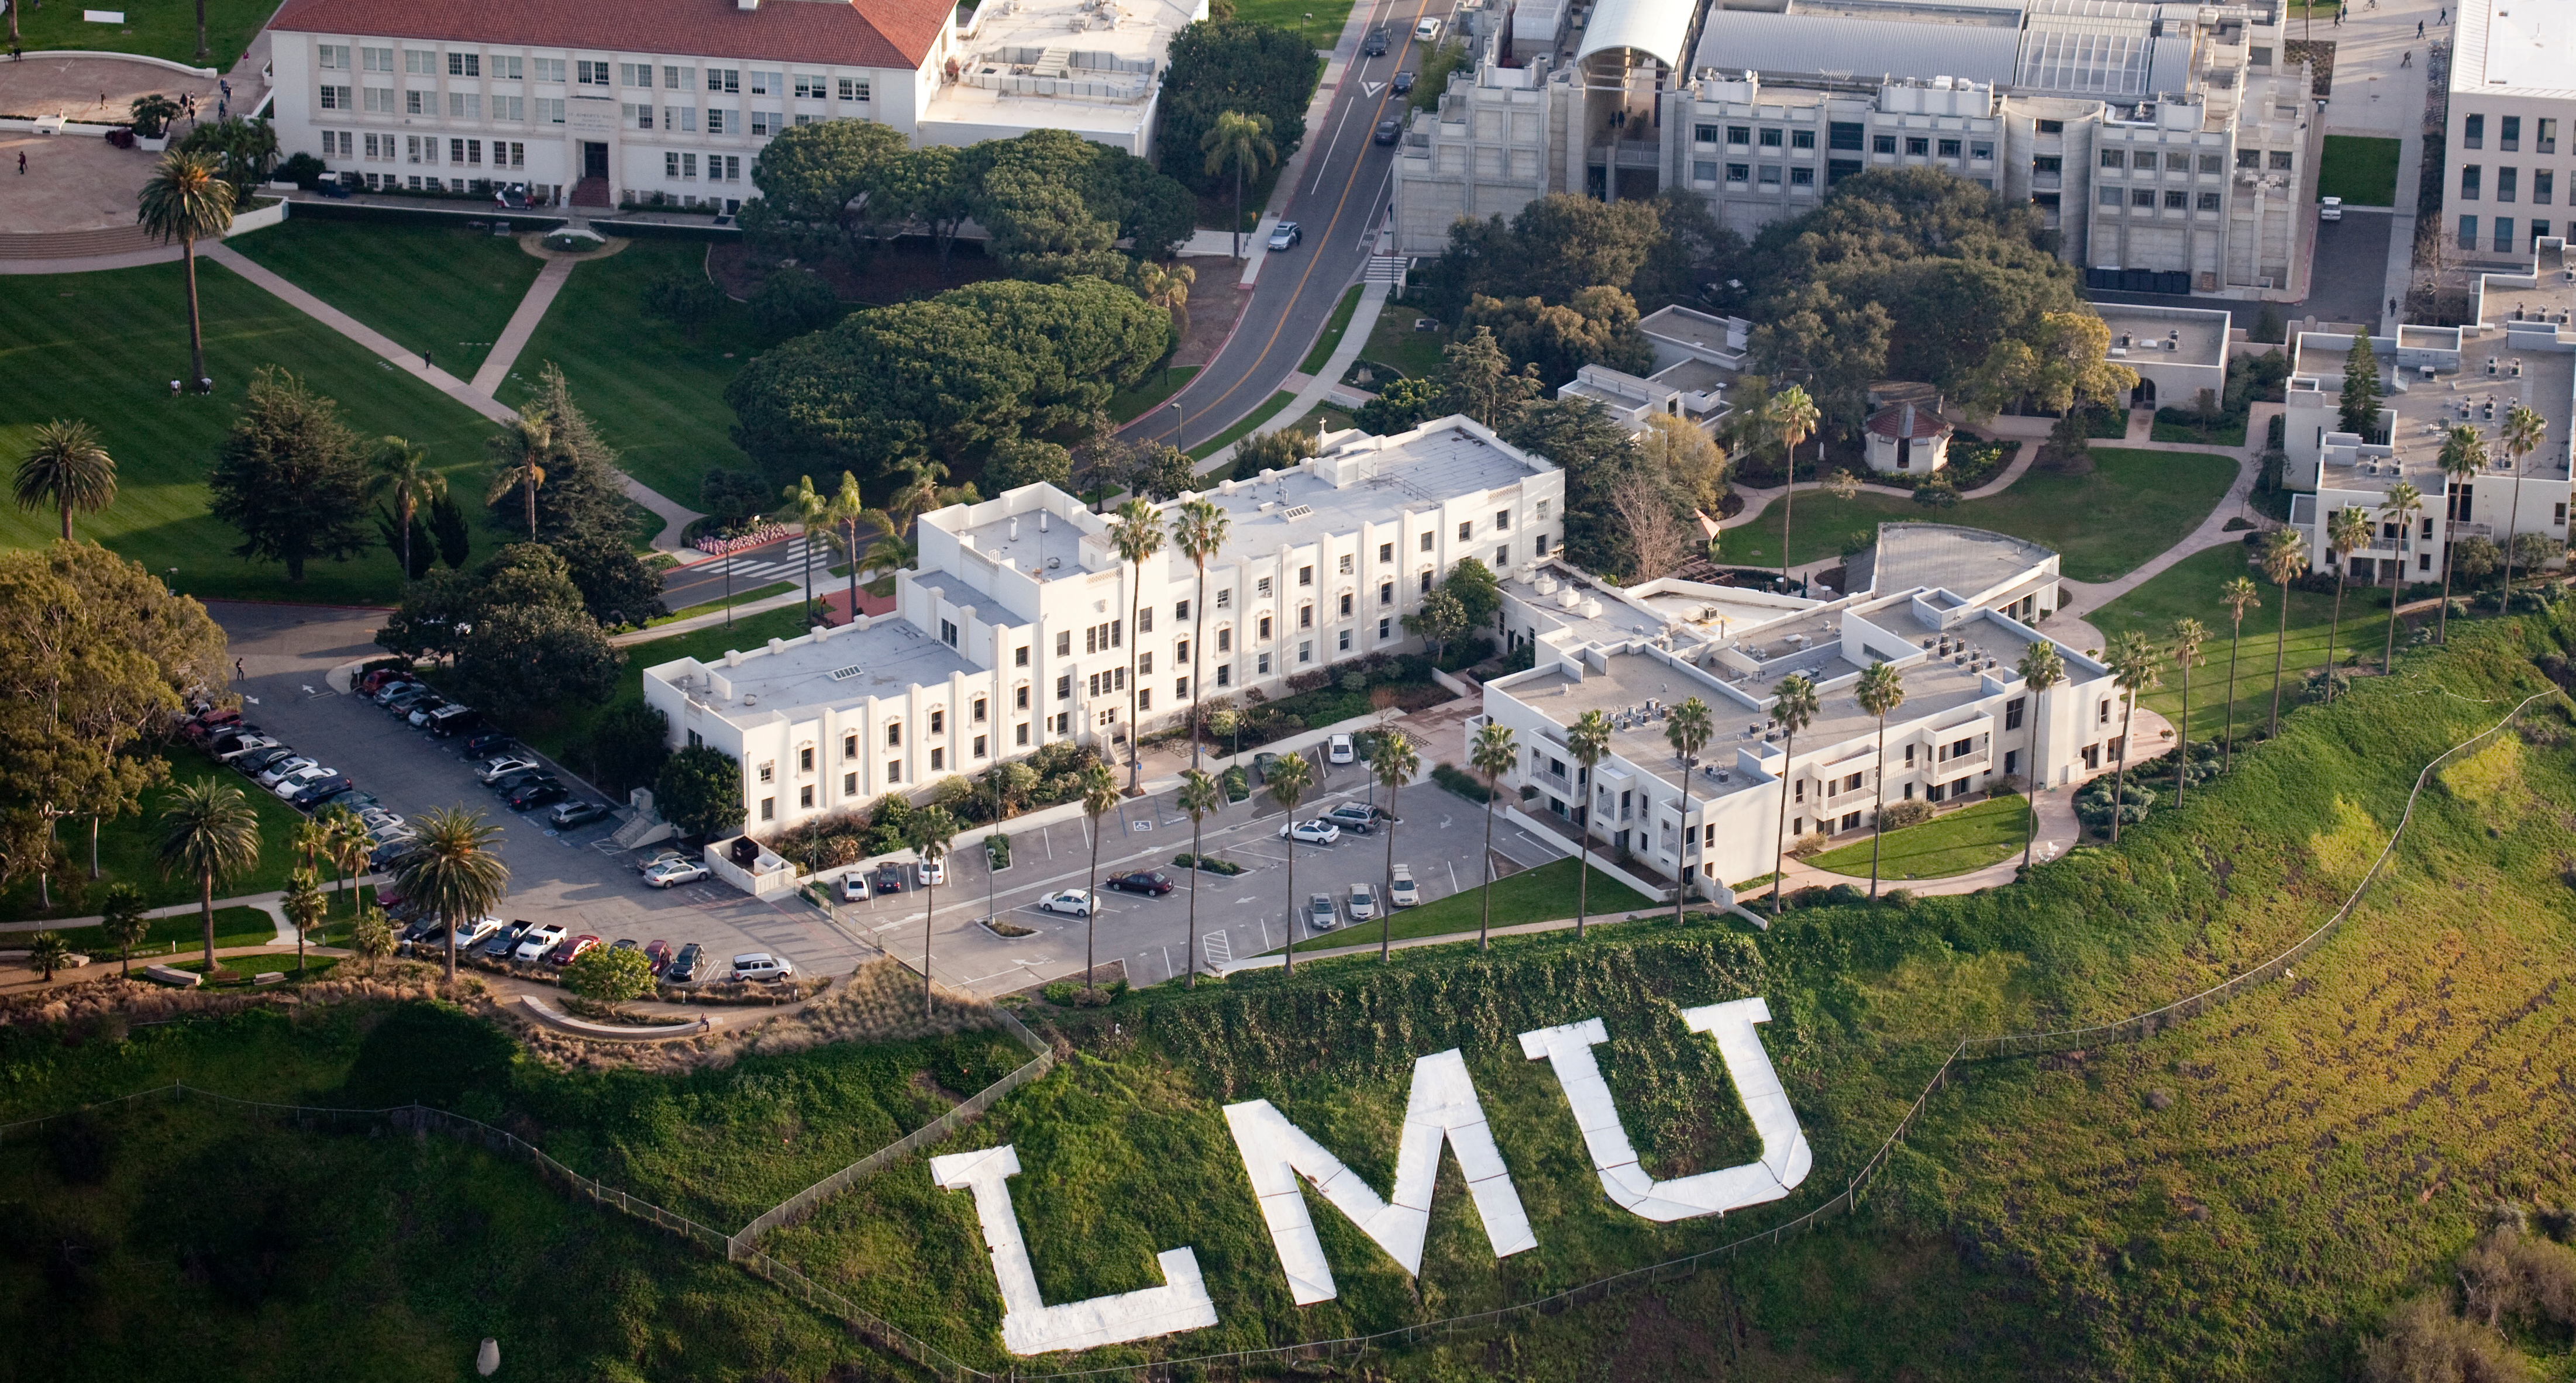 New Minors On Campus Policy - Lmu This Week pertaining to Lmu Payroll Calendar 2020